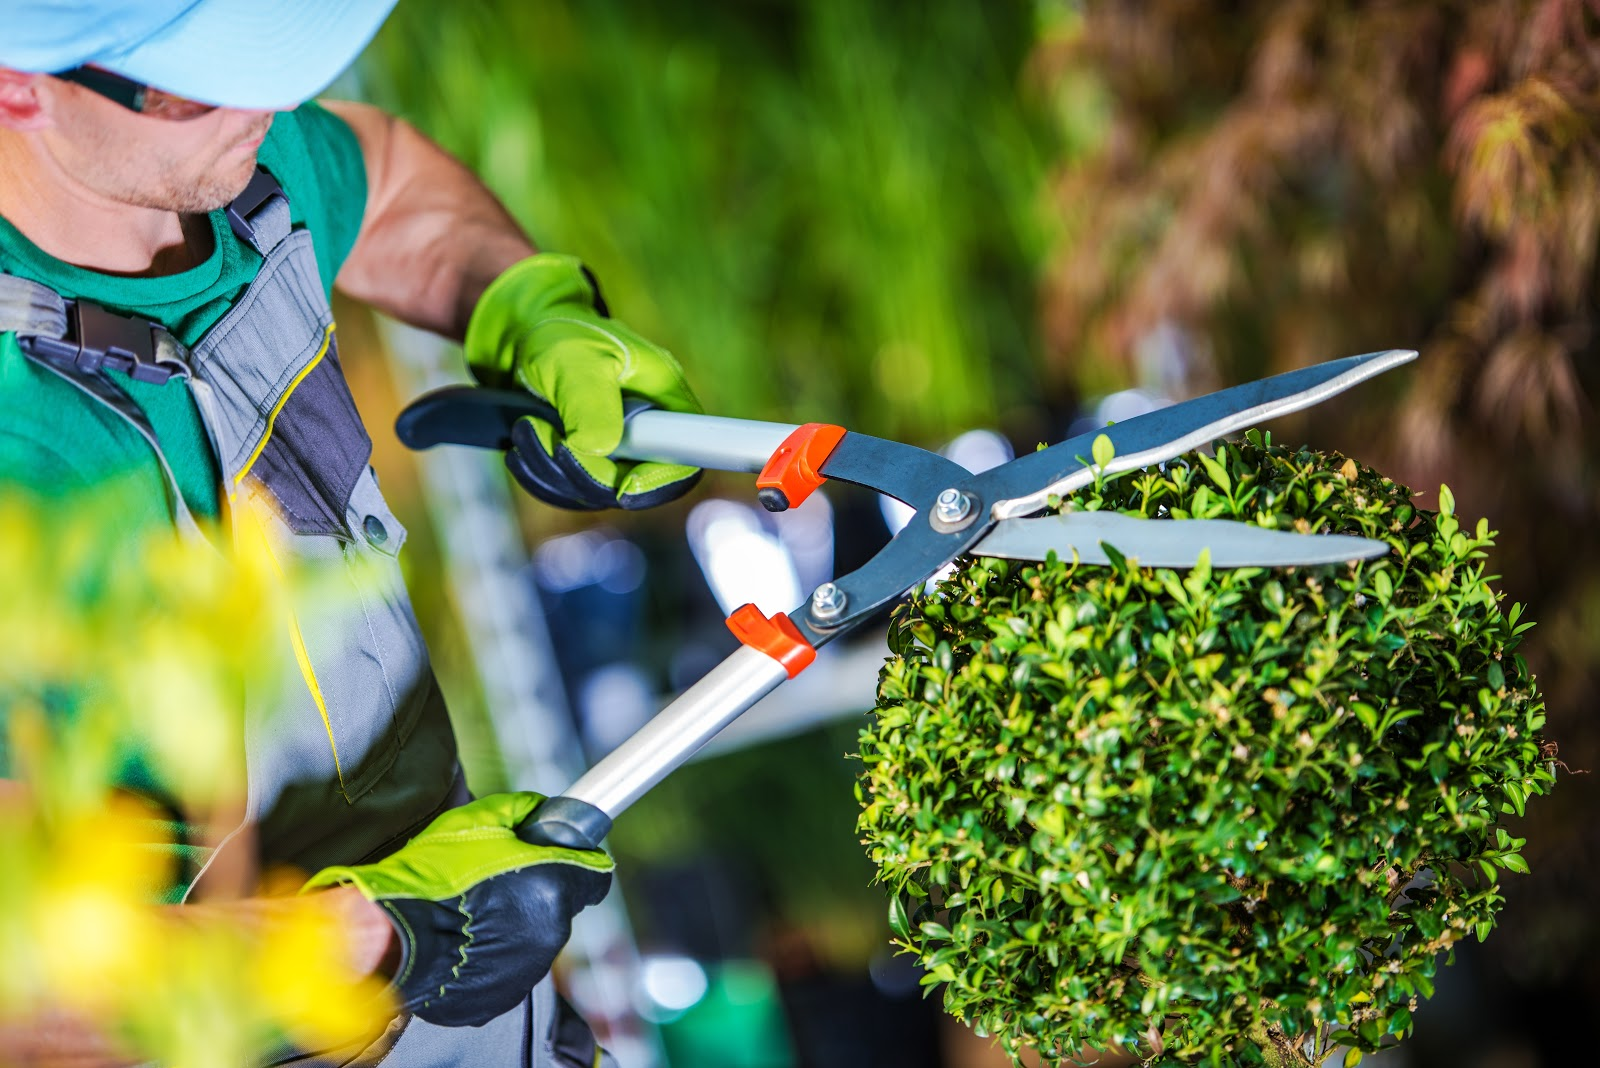 Gardening Services by Affordable Cleaning Service Brooklyn